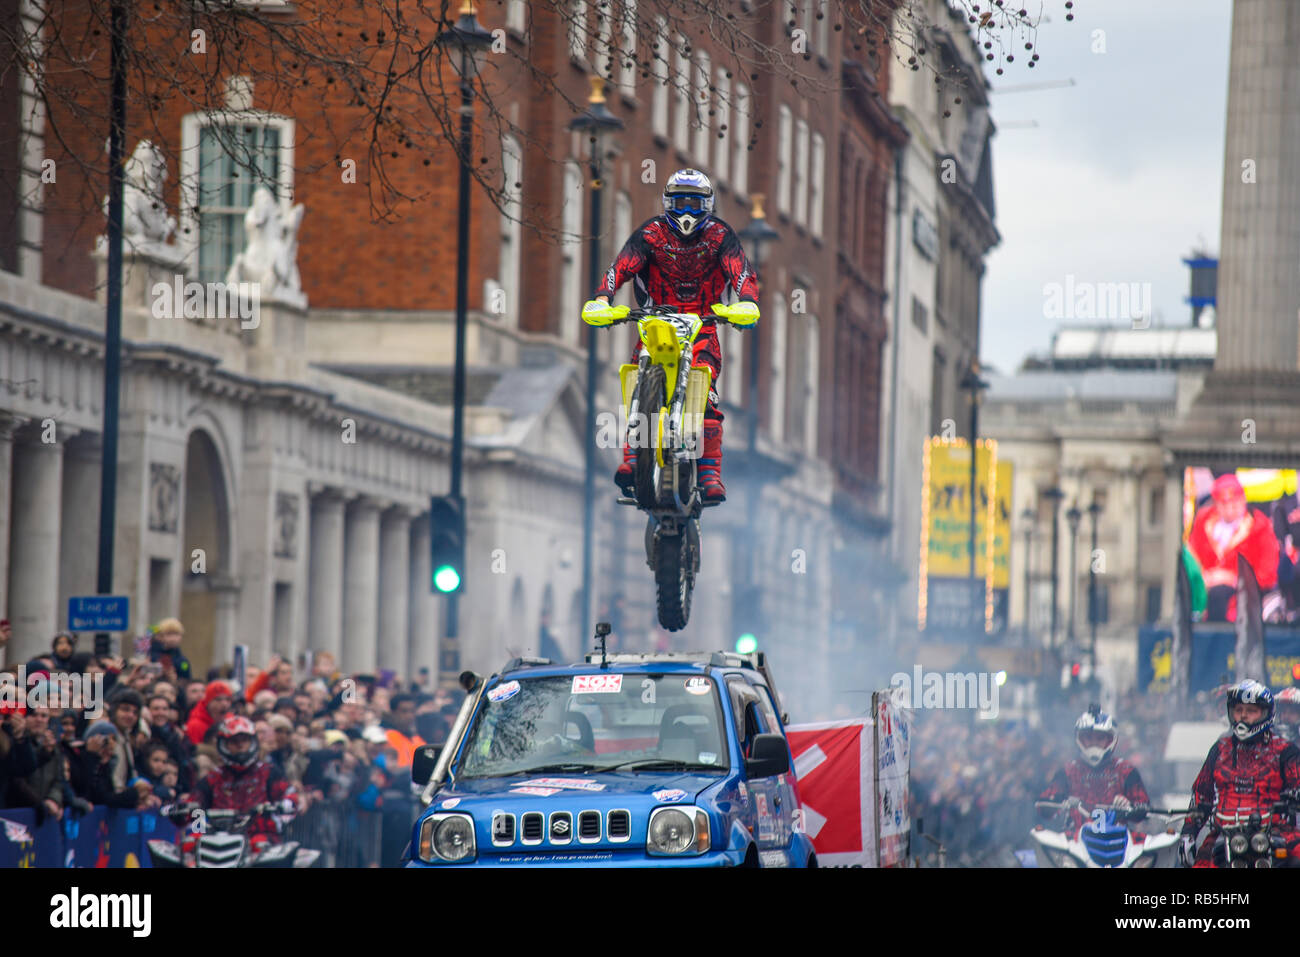 Moto Stunts International motorbike display team at London New Year's Day Parade. Motorcycle jumping over a car in Whitehall with Nelson's Column - Stock Image